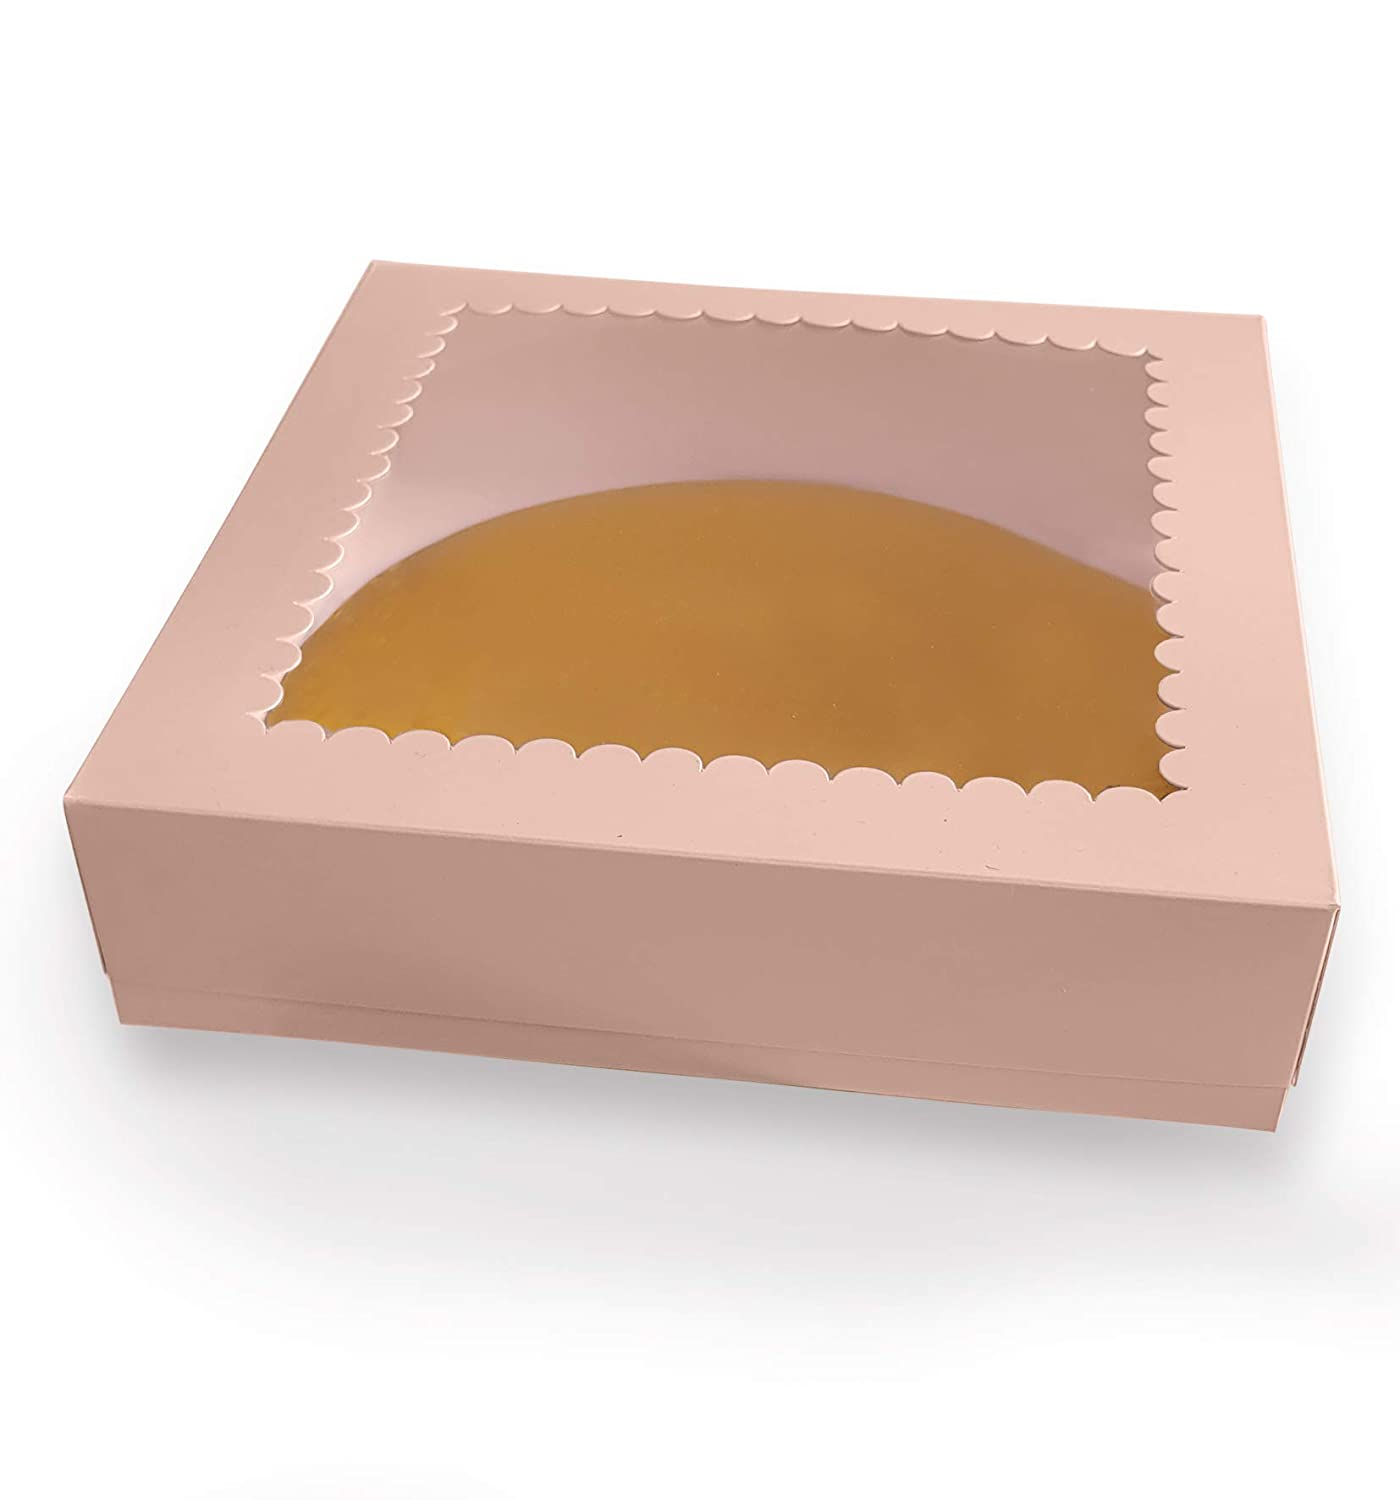 CooKeezz Couture - Light Pink Cake Boxes 10x10x2.5 Inch,Decorated Bakery Box Auto Popup for Cake, Cupcake, Muffins, Macaroons and Cookies - 12 Pack Boxes Included with 12 Cake Round Boards.